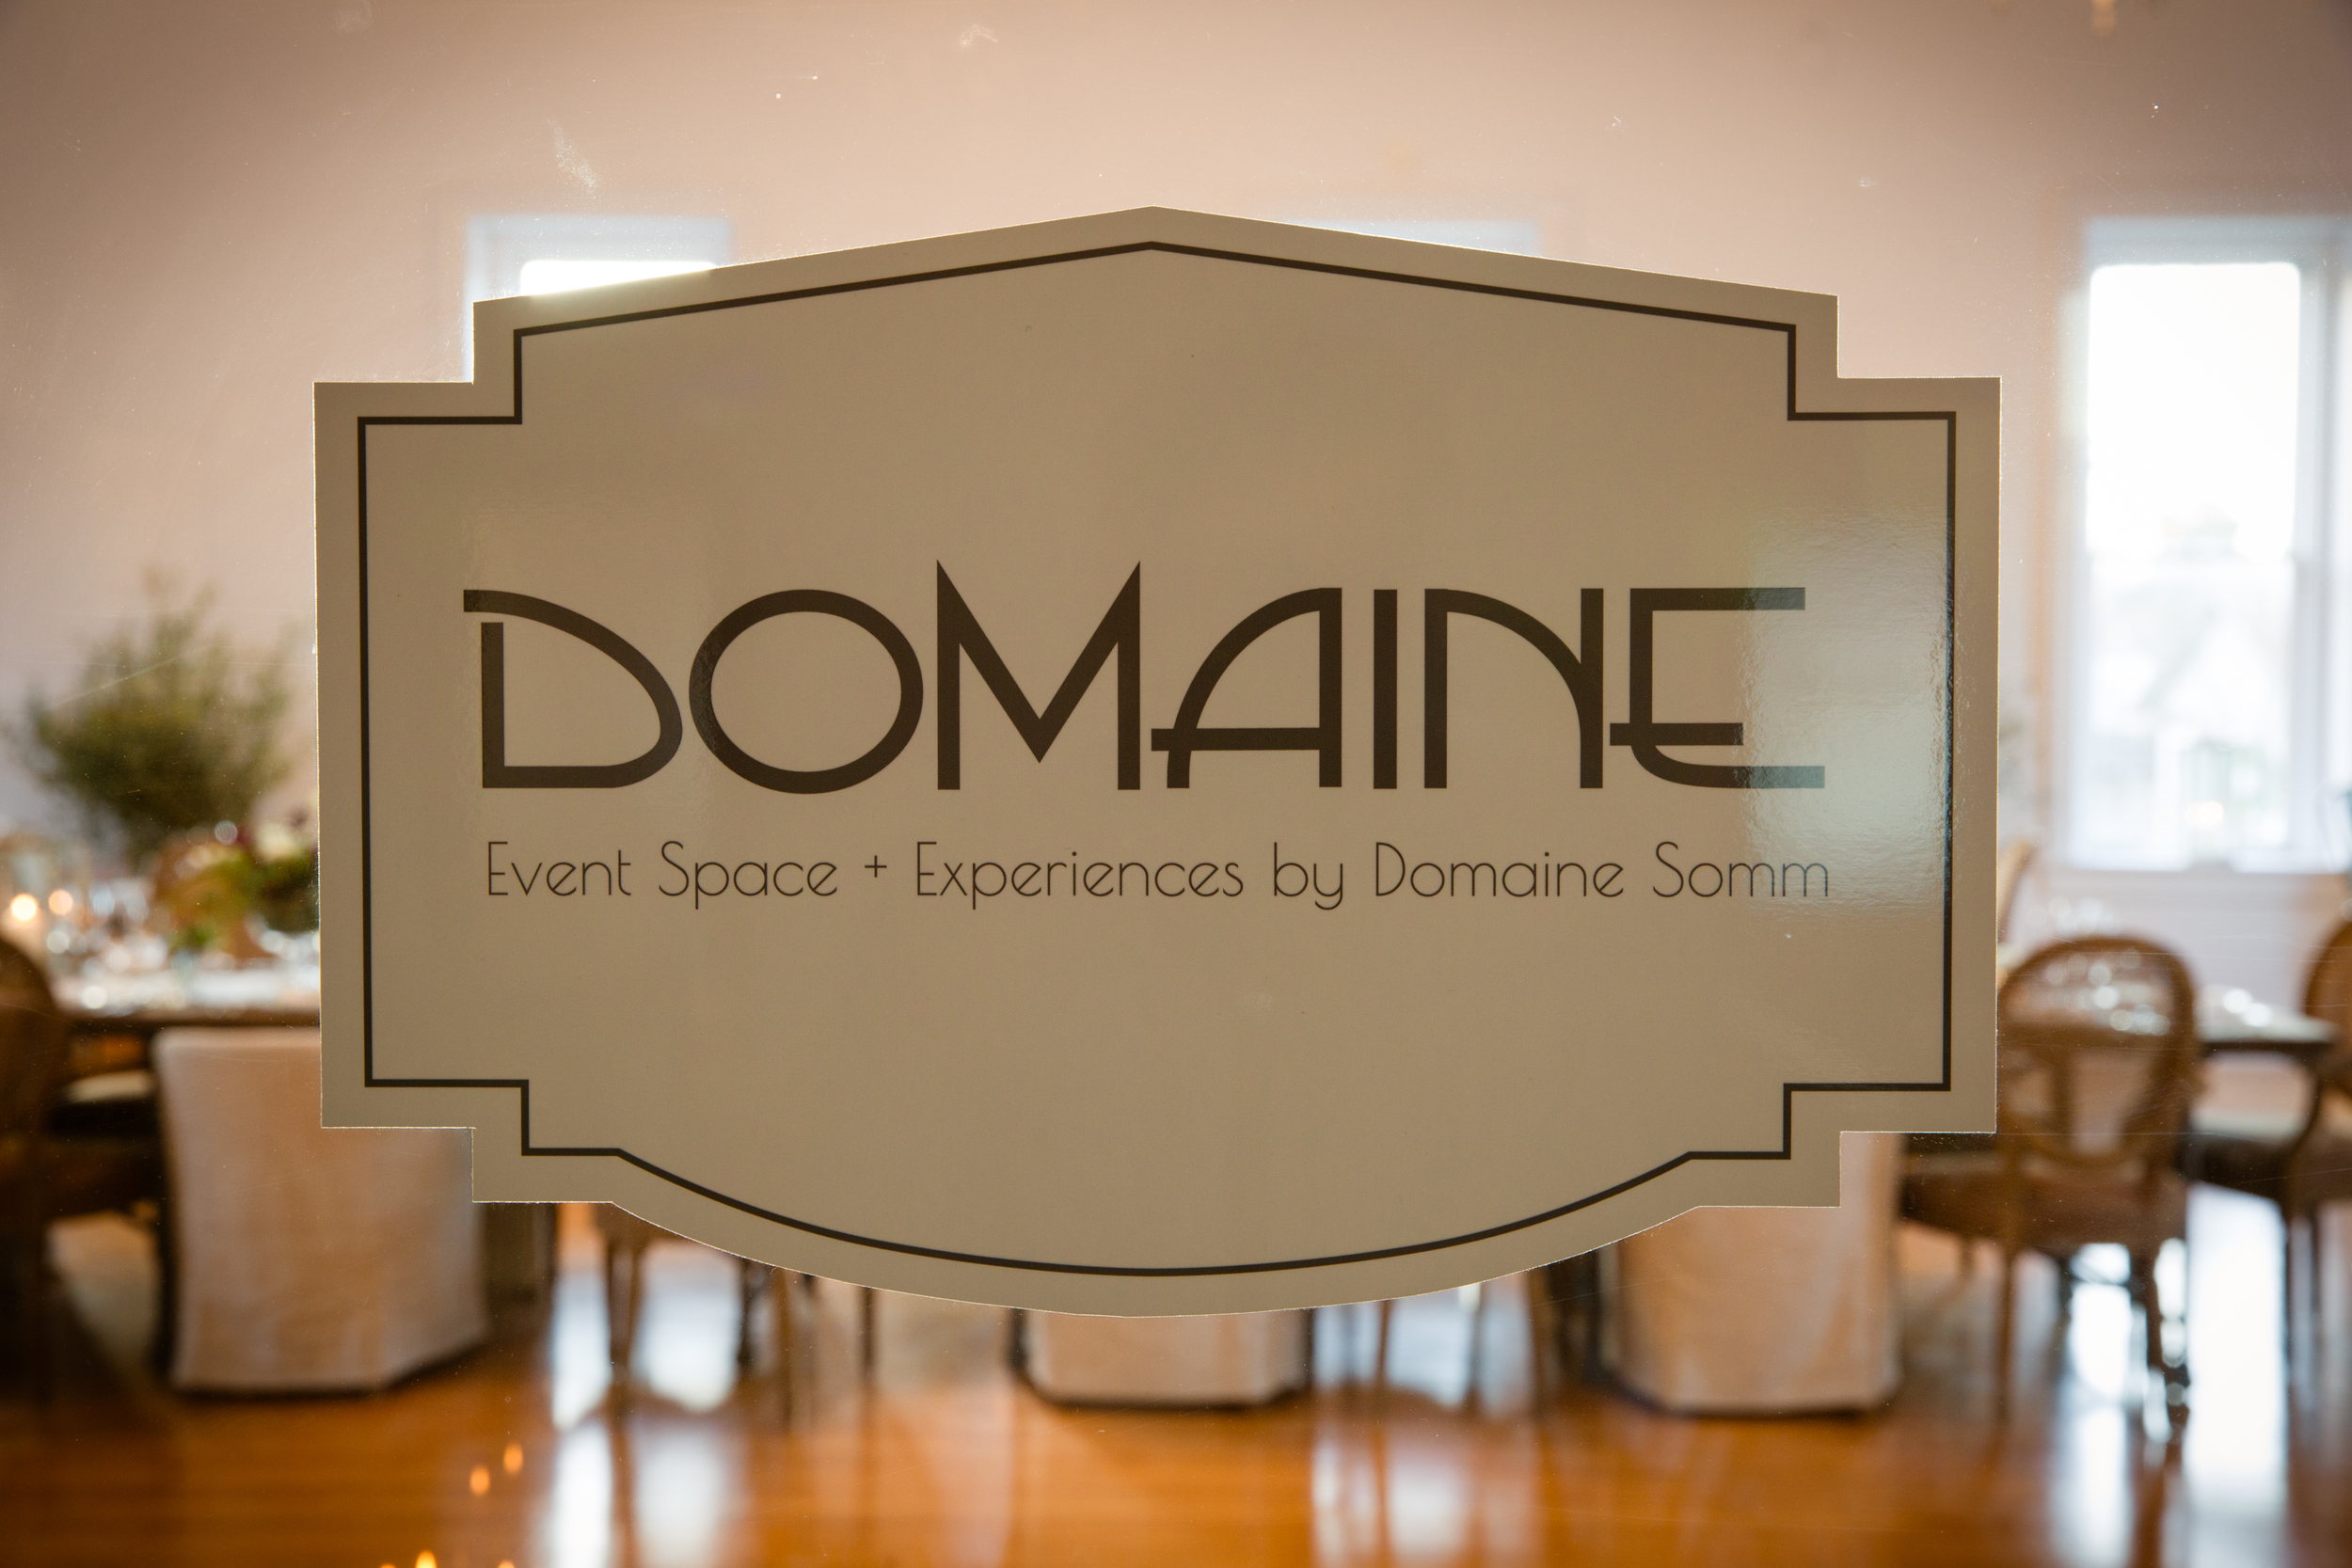 DOMAINE event space